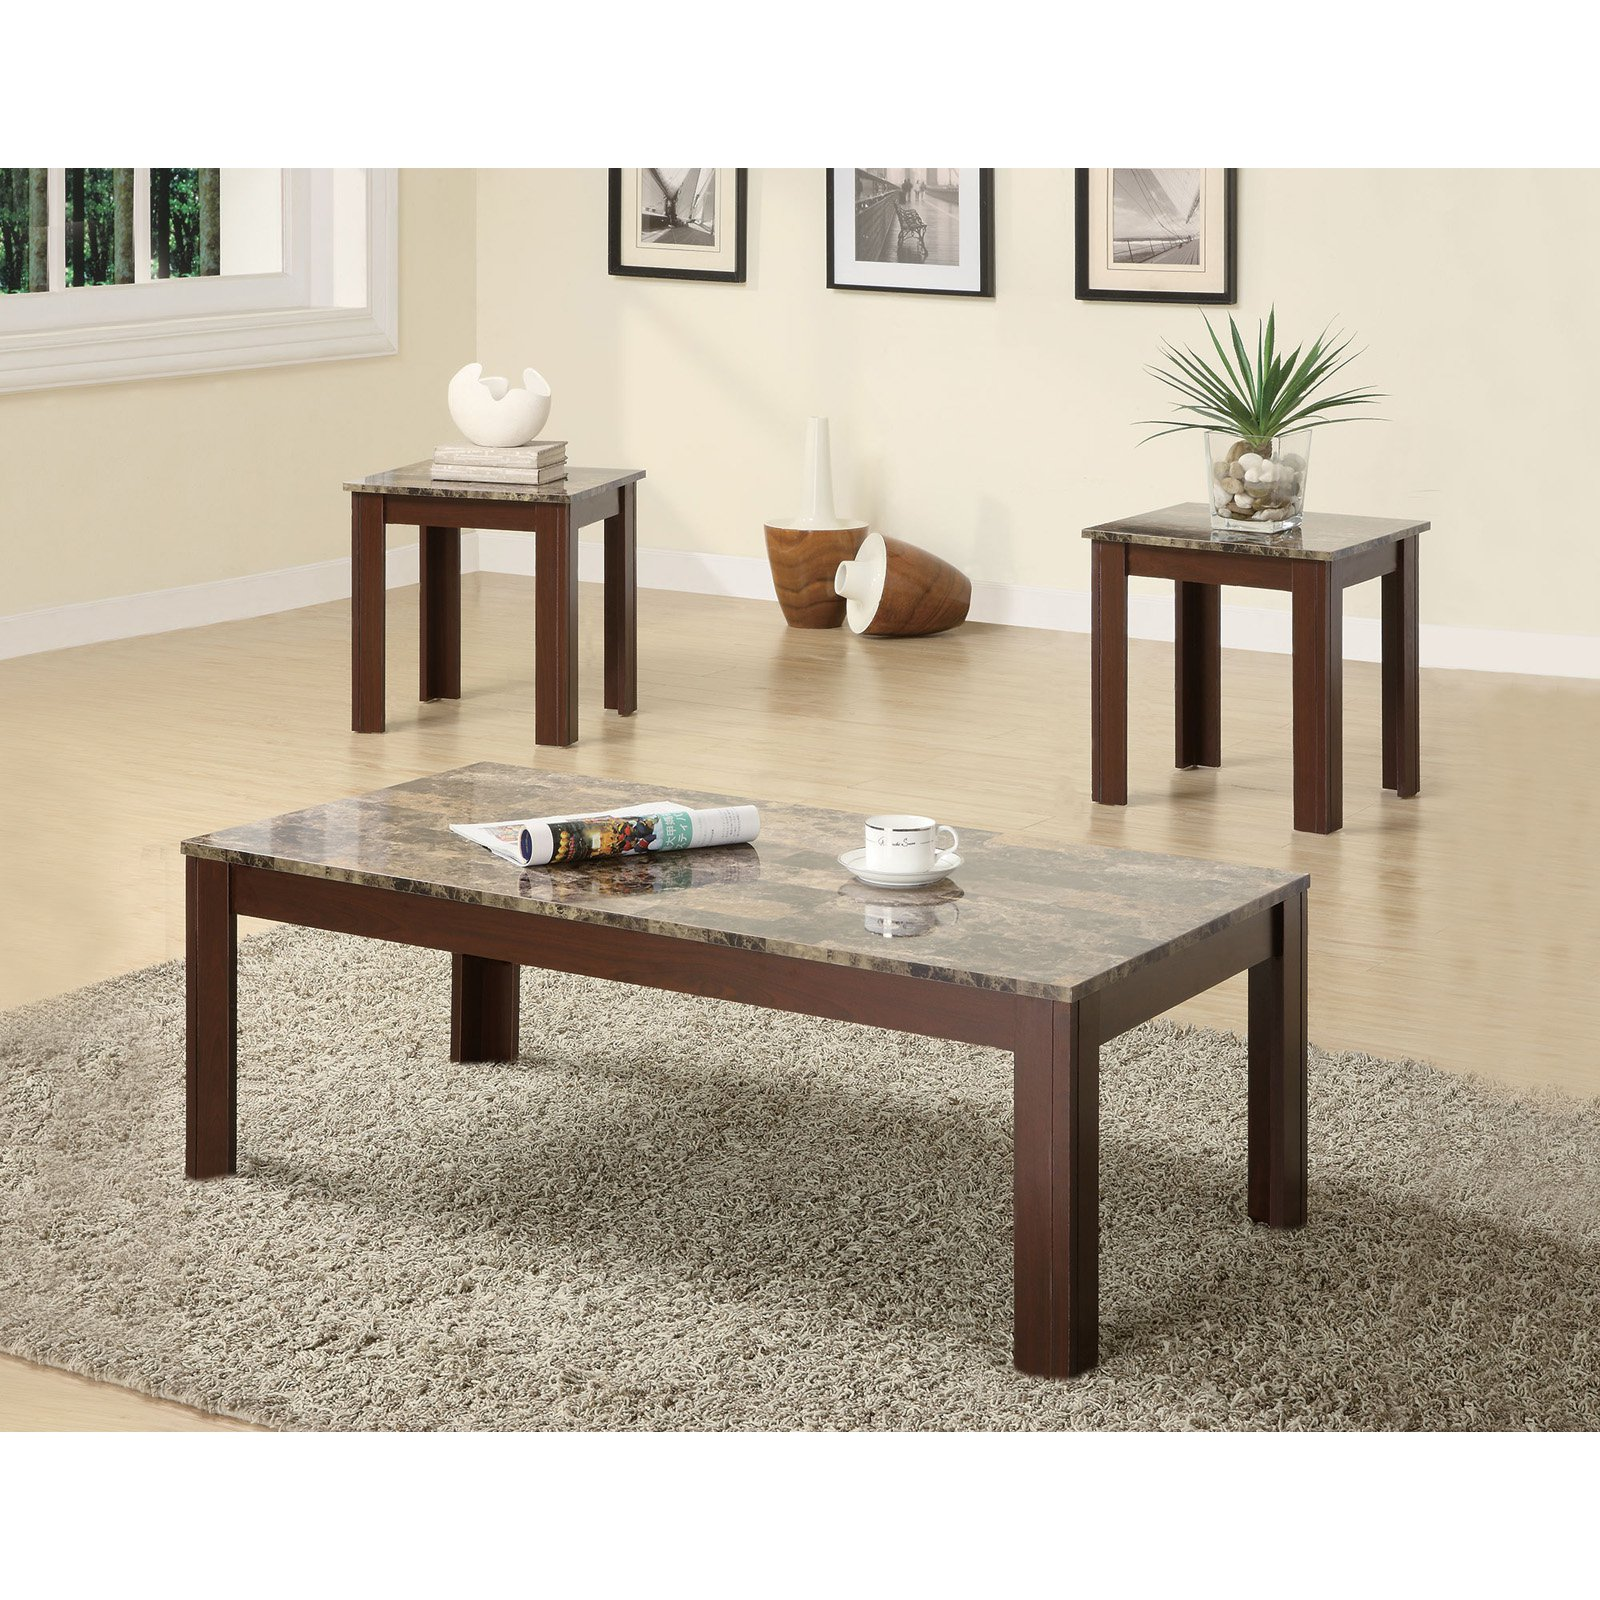 Coaster 3 Piece Table Set, Brown Marble Finish